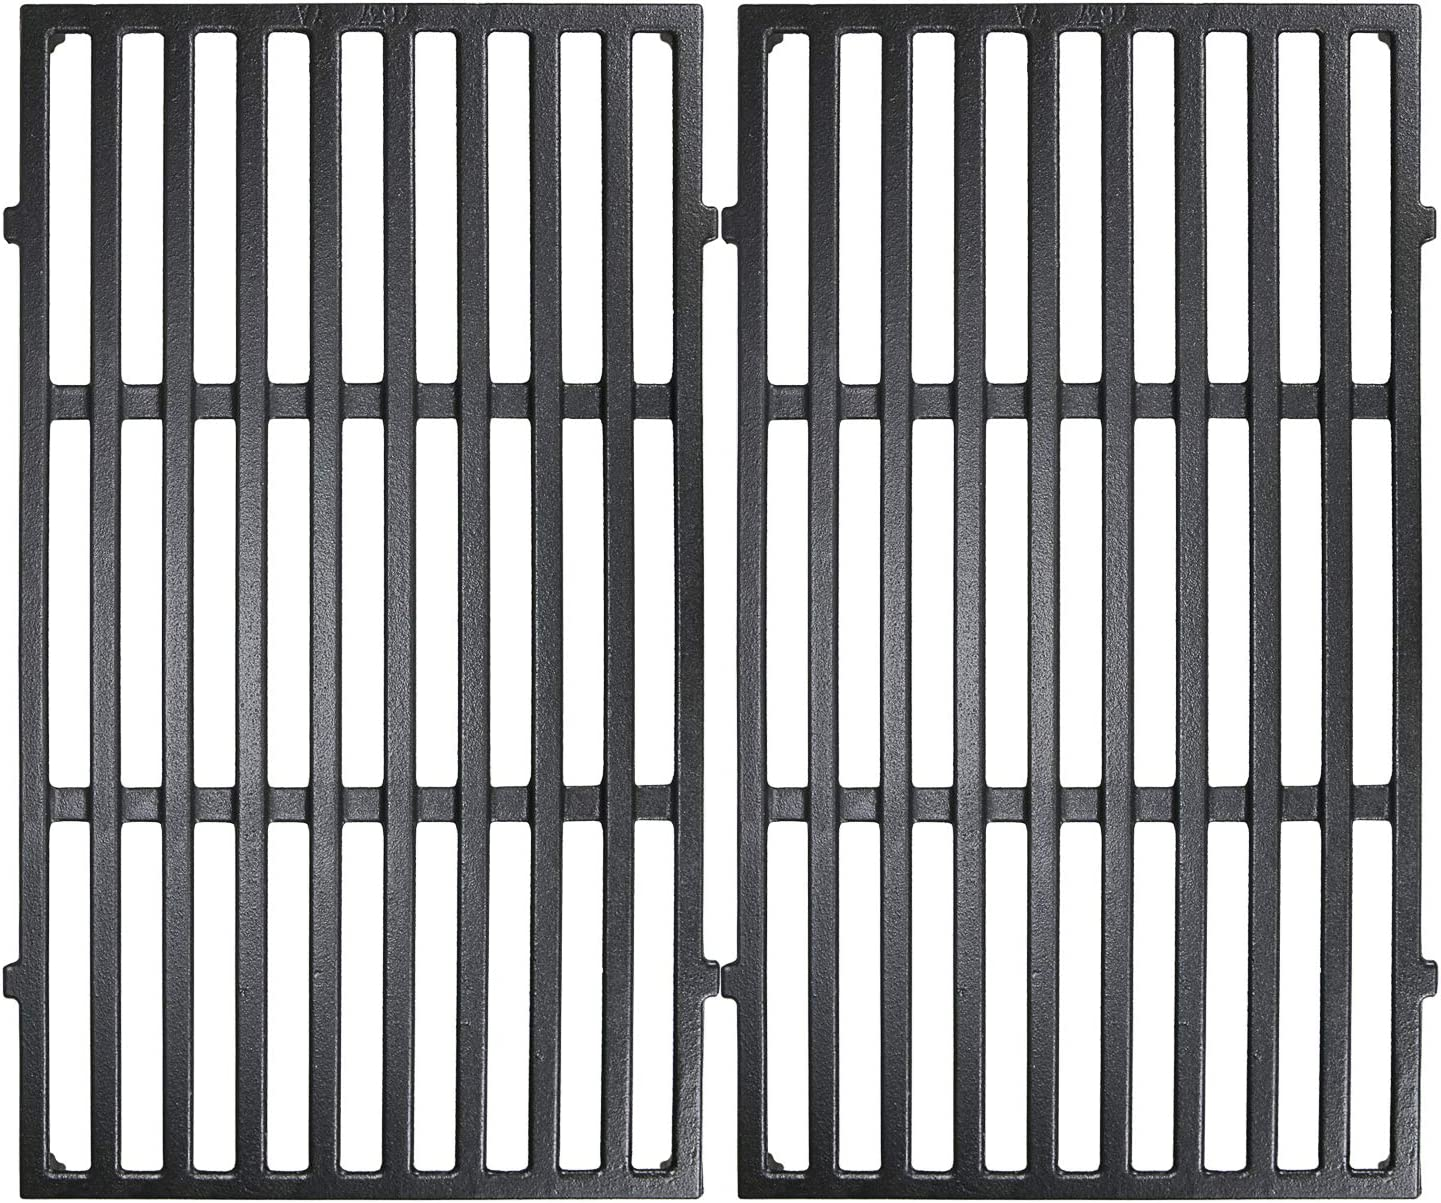 Utheer 7637 Cast Iron Cooking Grid Grate 17.5 x 10.2 Inch for Weber 46010074 Spirit 200 E210 S210 Series Gas Grills, Grill Replacement Parts for Weber 7637 Gas Grills with Front-Mounted Control Panels